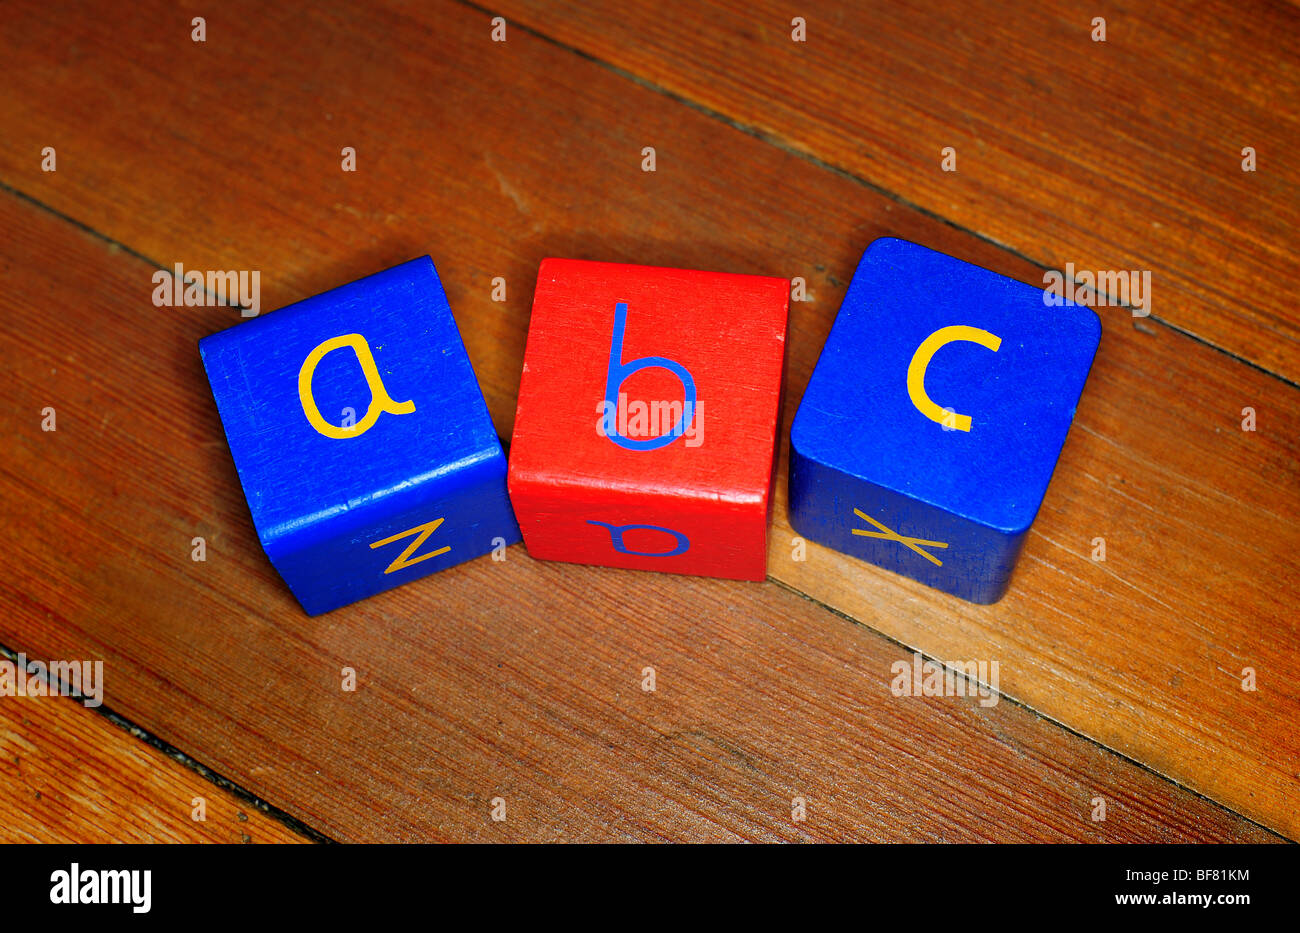 three childrens wooden blocks with a b c written on them, on a wooden floor in a nursery, to teach spelling reading - Stock Image